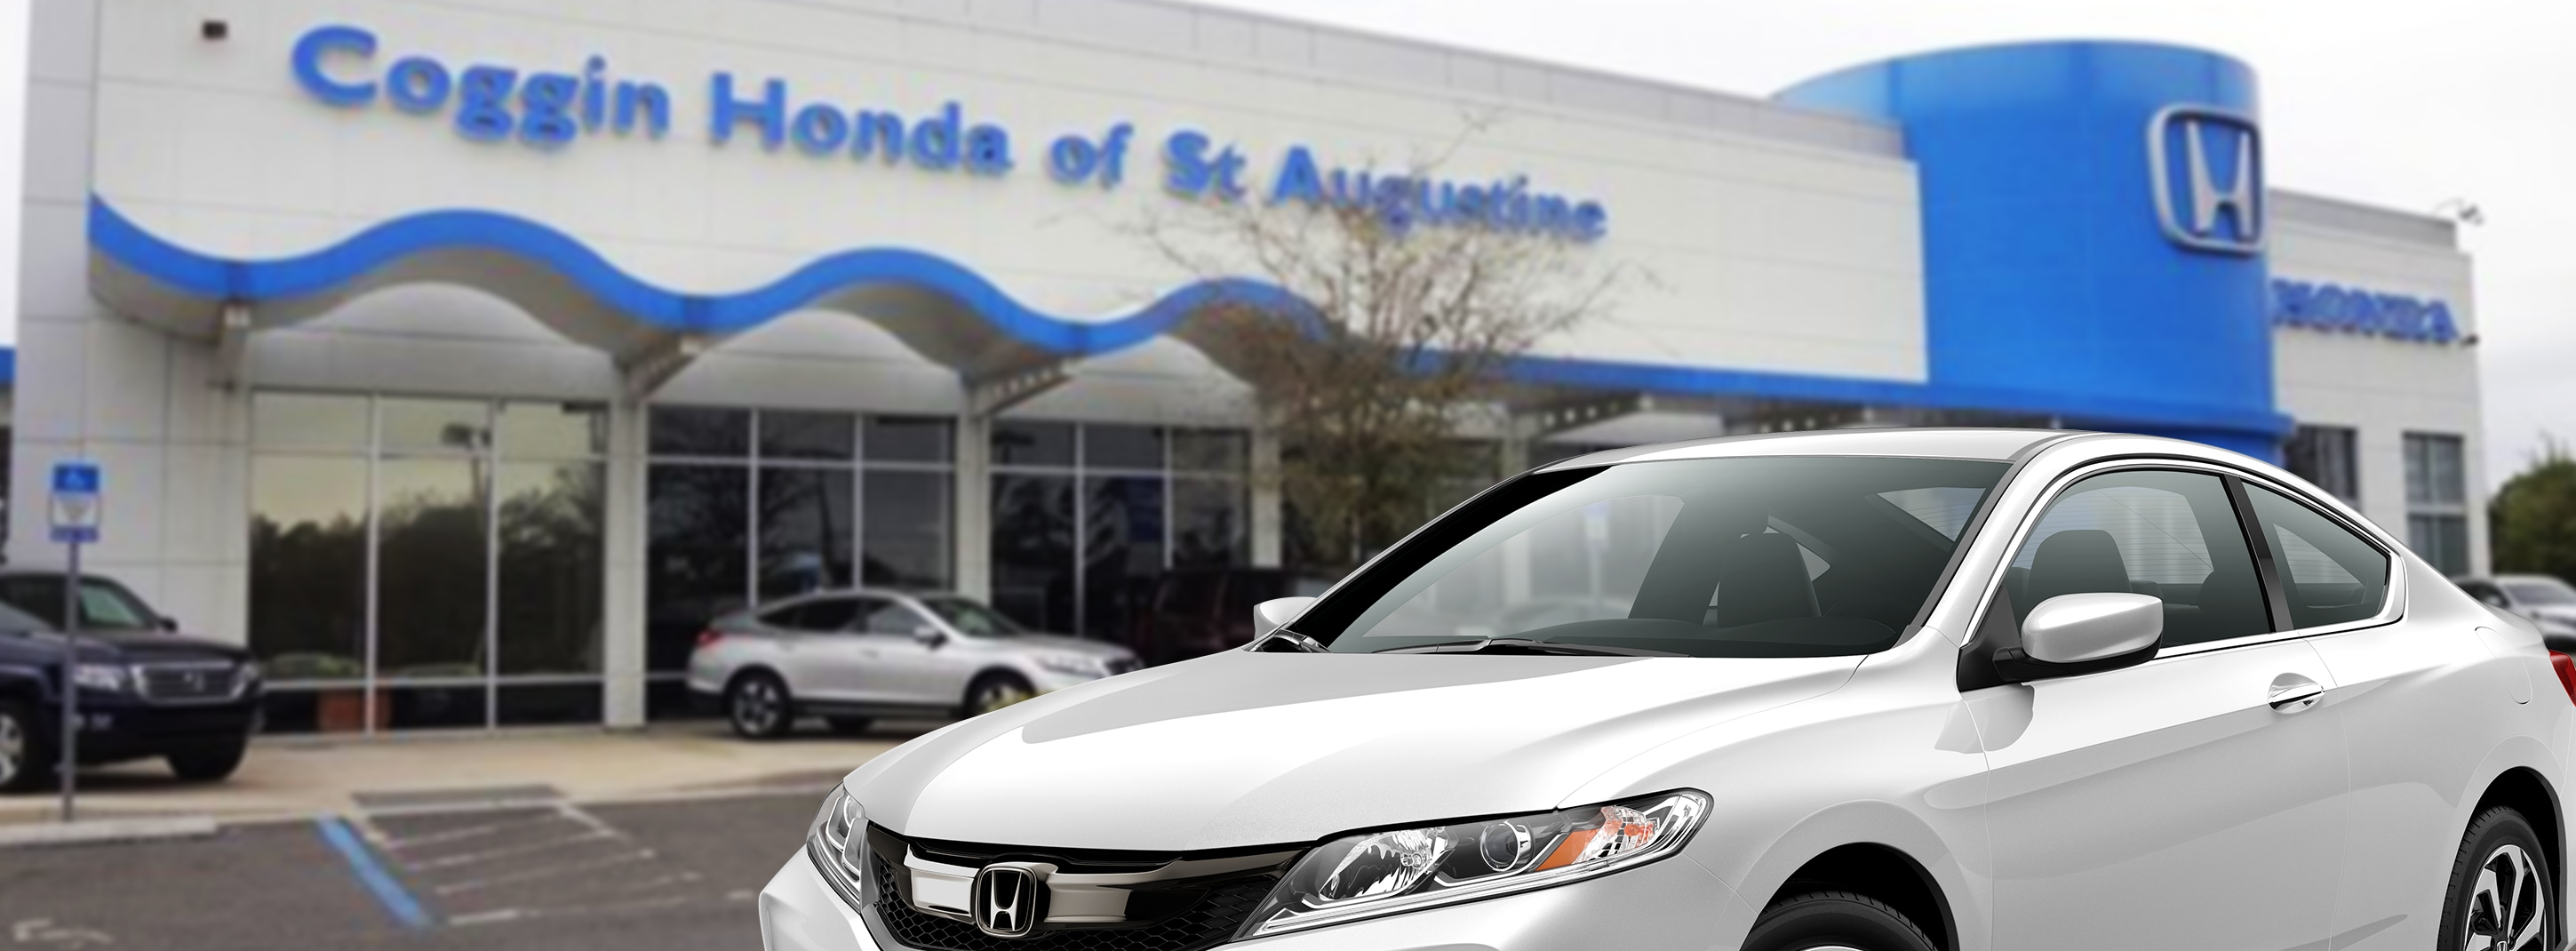 Why from Honda St Augustine